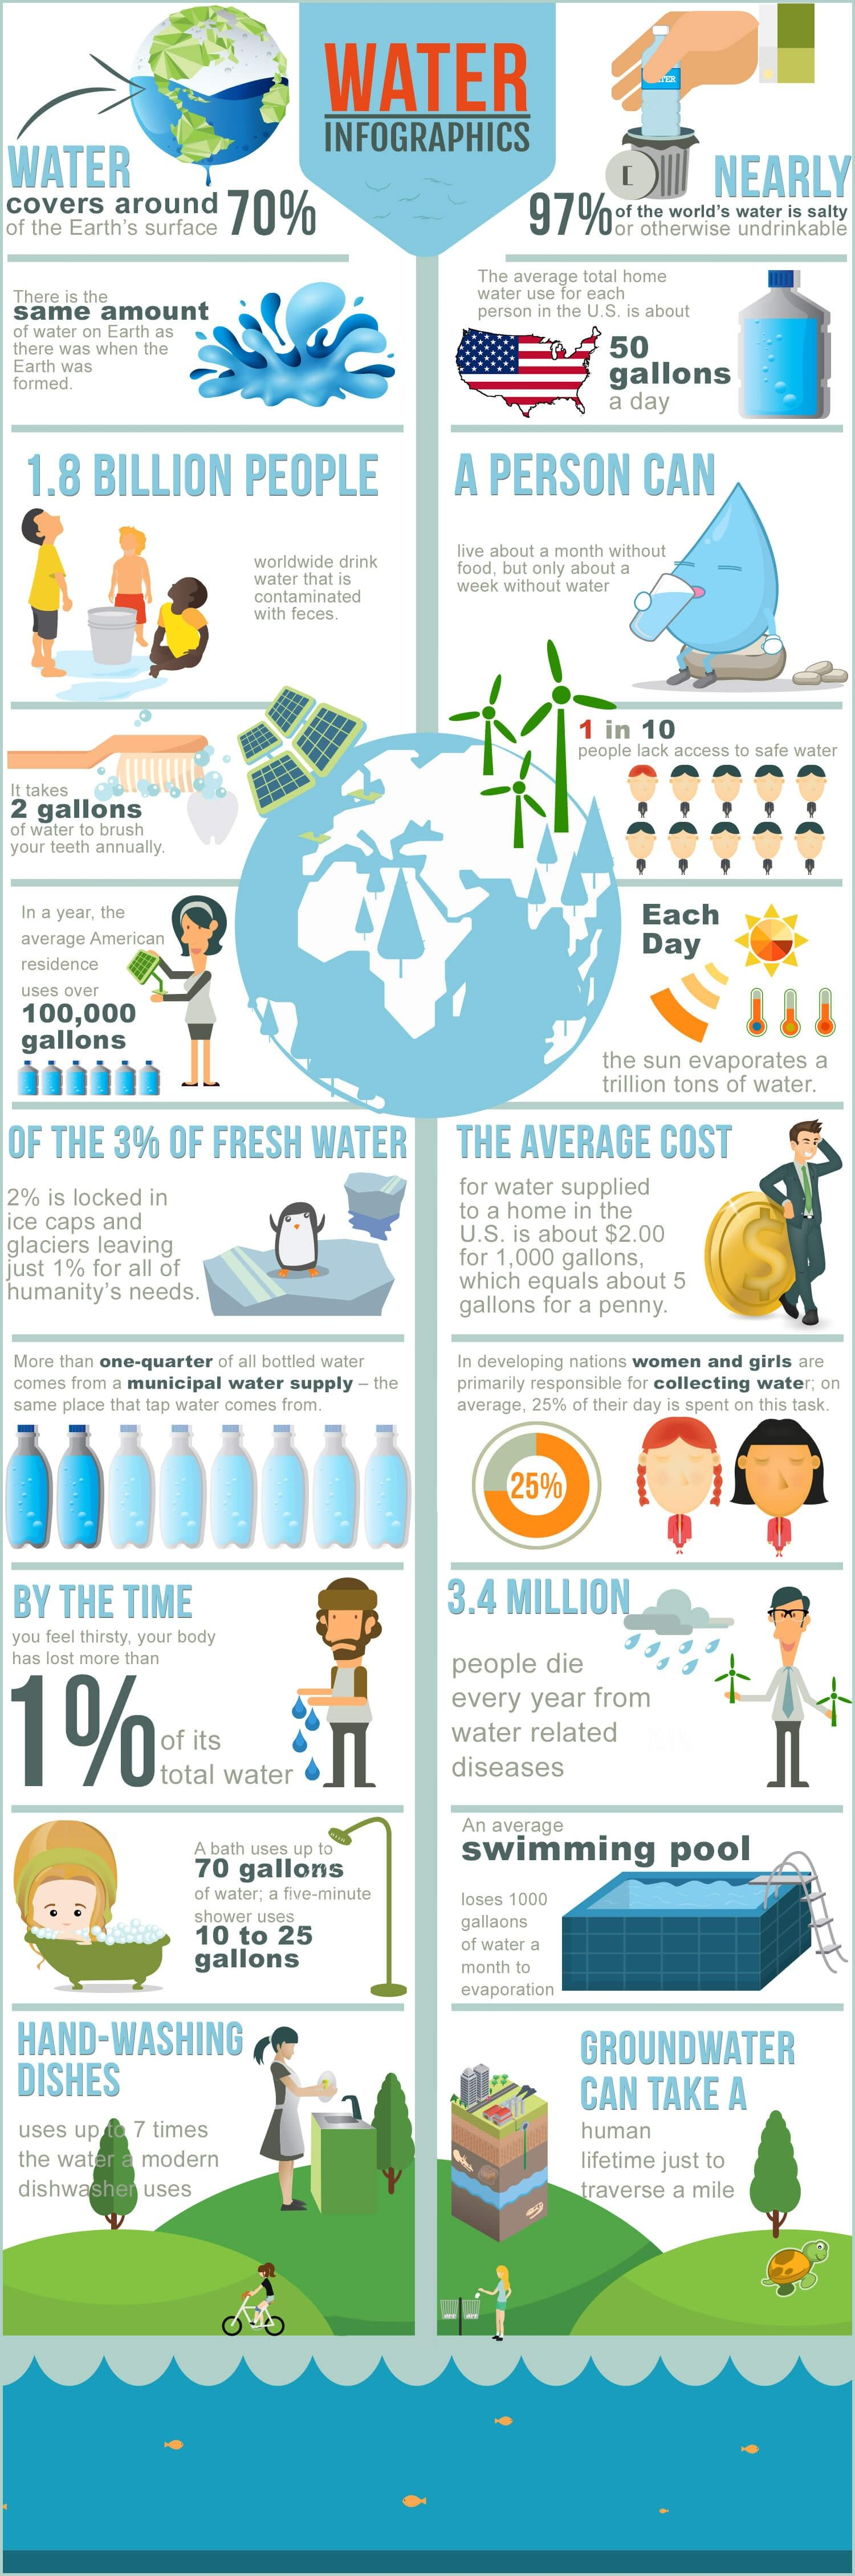 20 More Amazing Water Facts Infographic